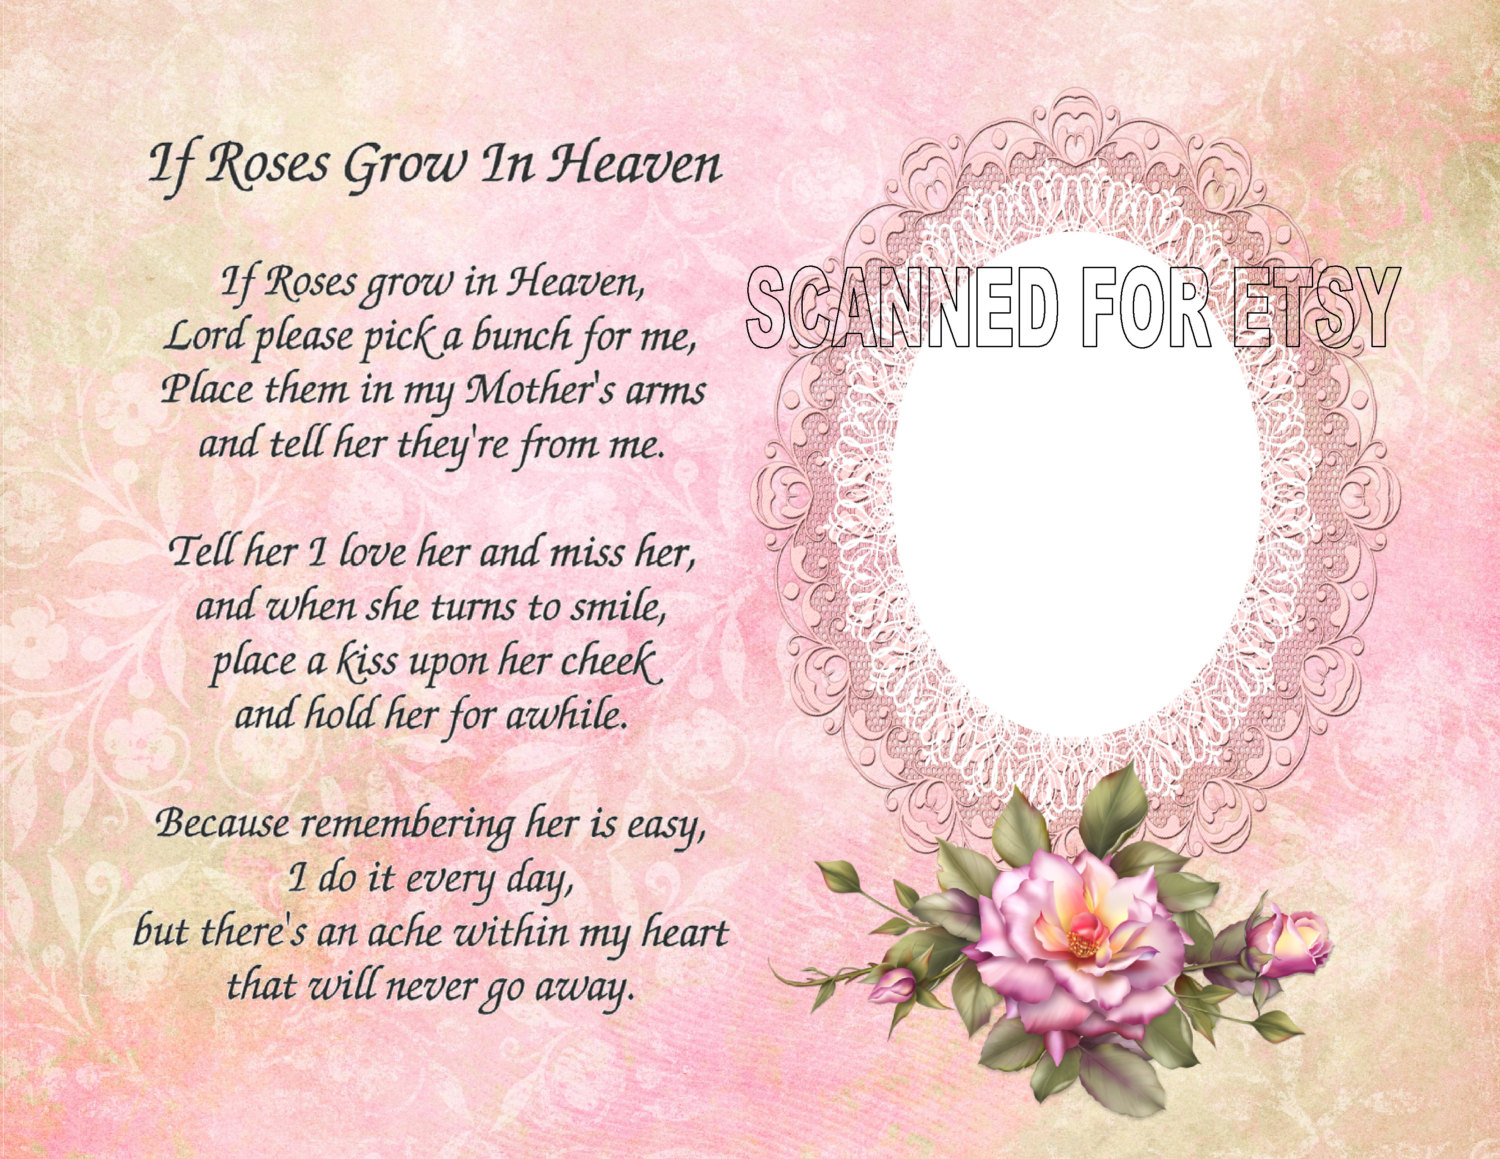 Verses for funeral flowers mum gallery flower wallpaper hd verses for funeral flowers mum images flower wallpaper hd verses for funeral flowers mum image collections izmirmasajfo